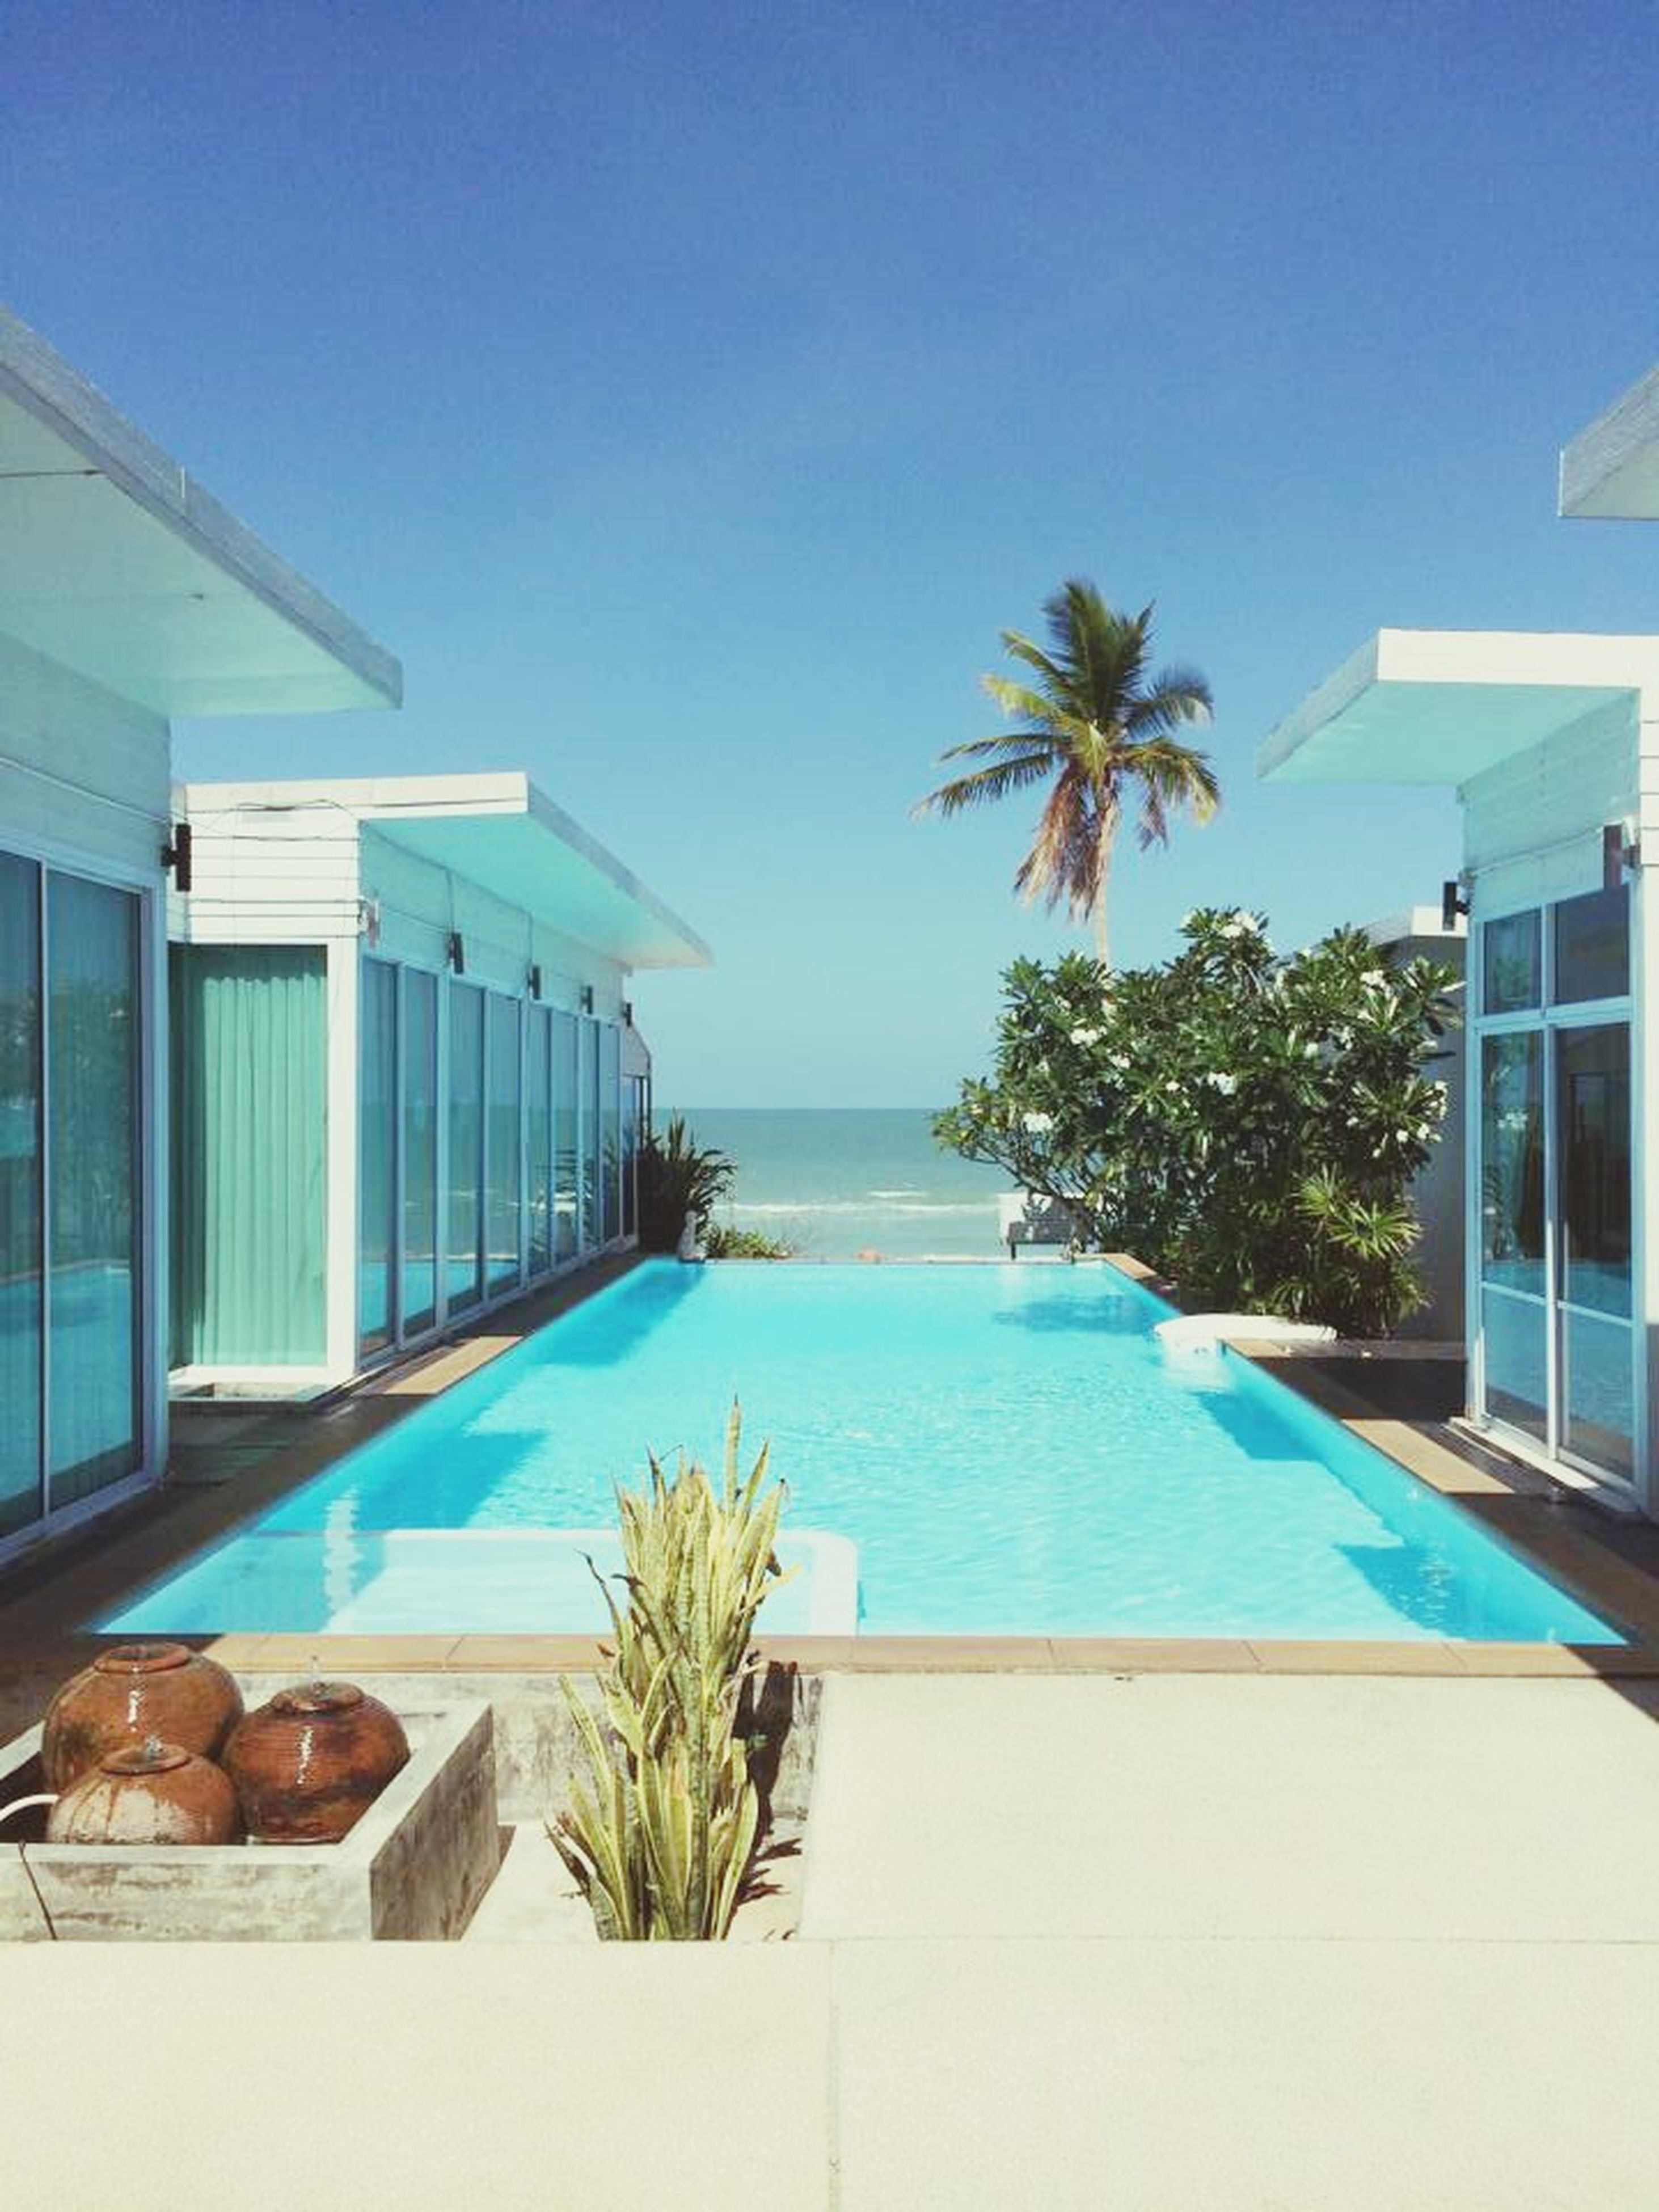 palm tree, blue, swimming pool, water, architecture, built structure, sea, building exterior, tree, clear sky, horizon over water, tourist resort, house, plant, sunlight, beach, window, sky, growth, day